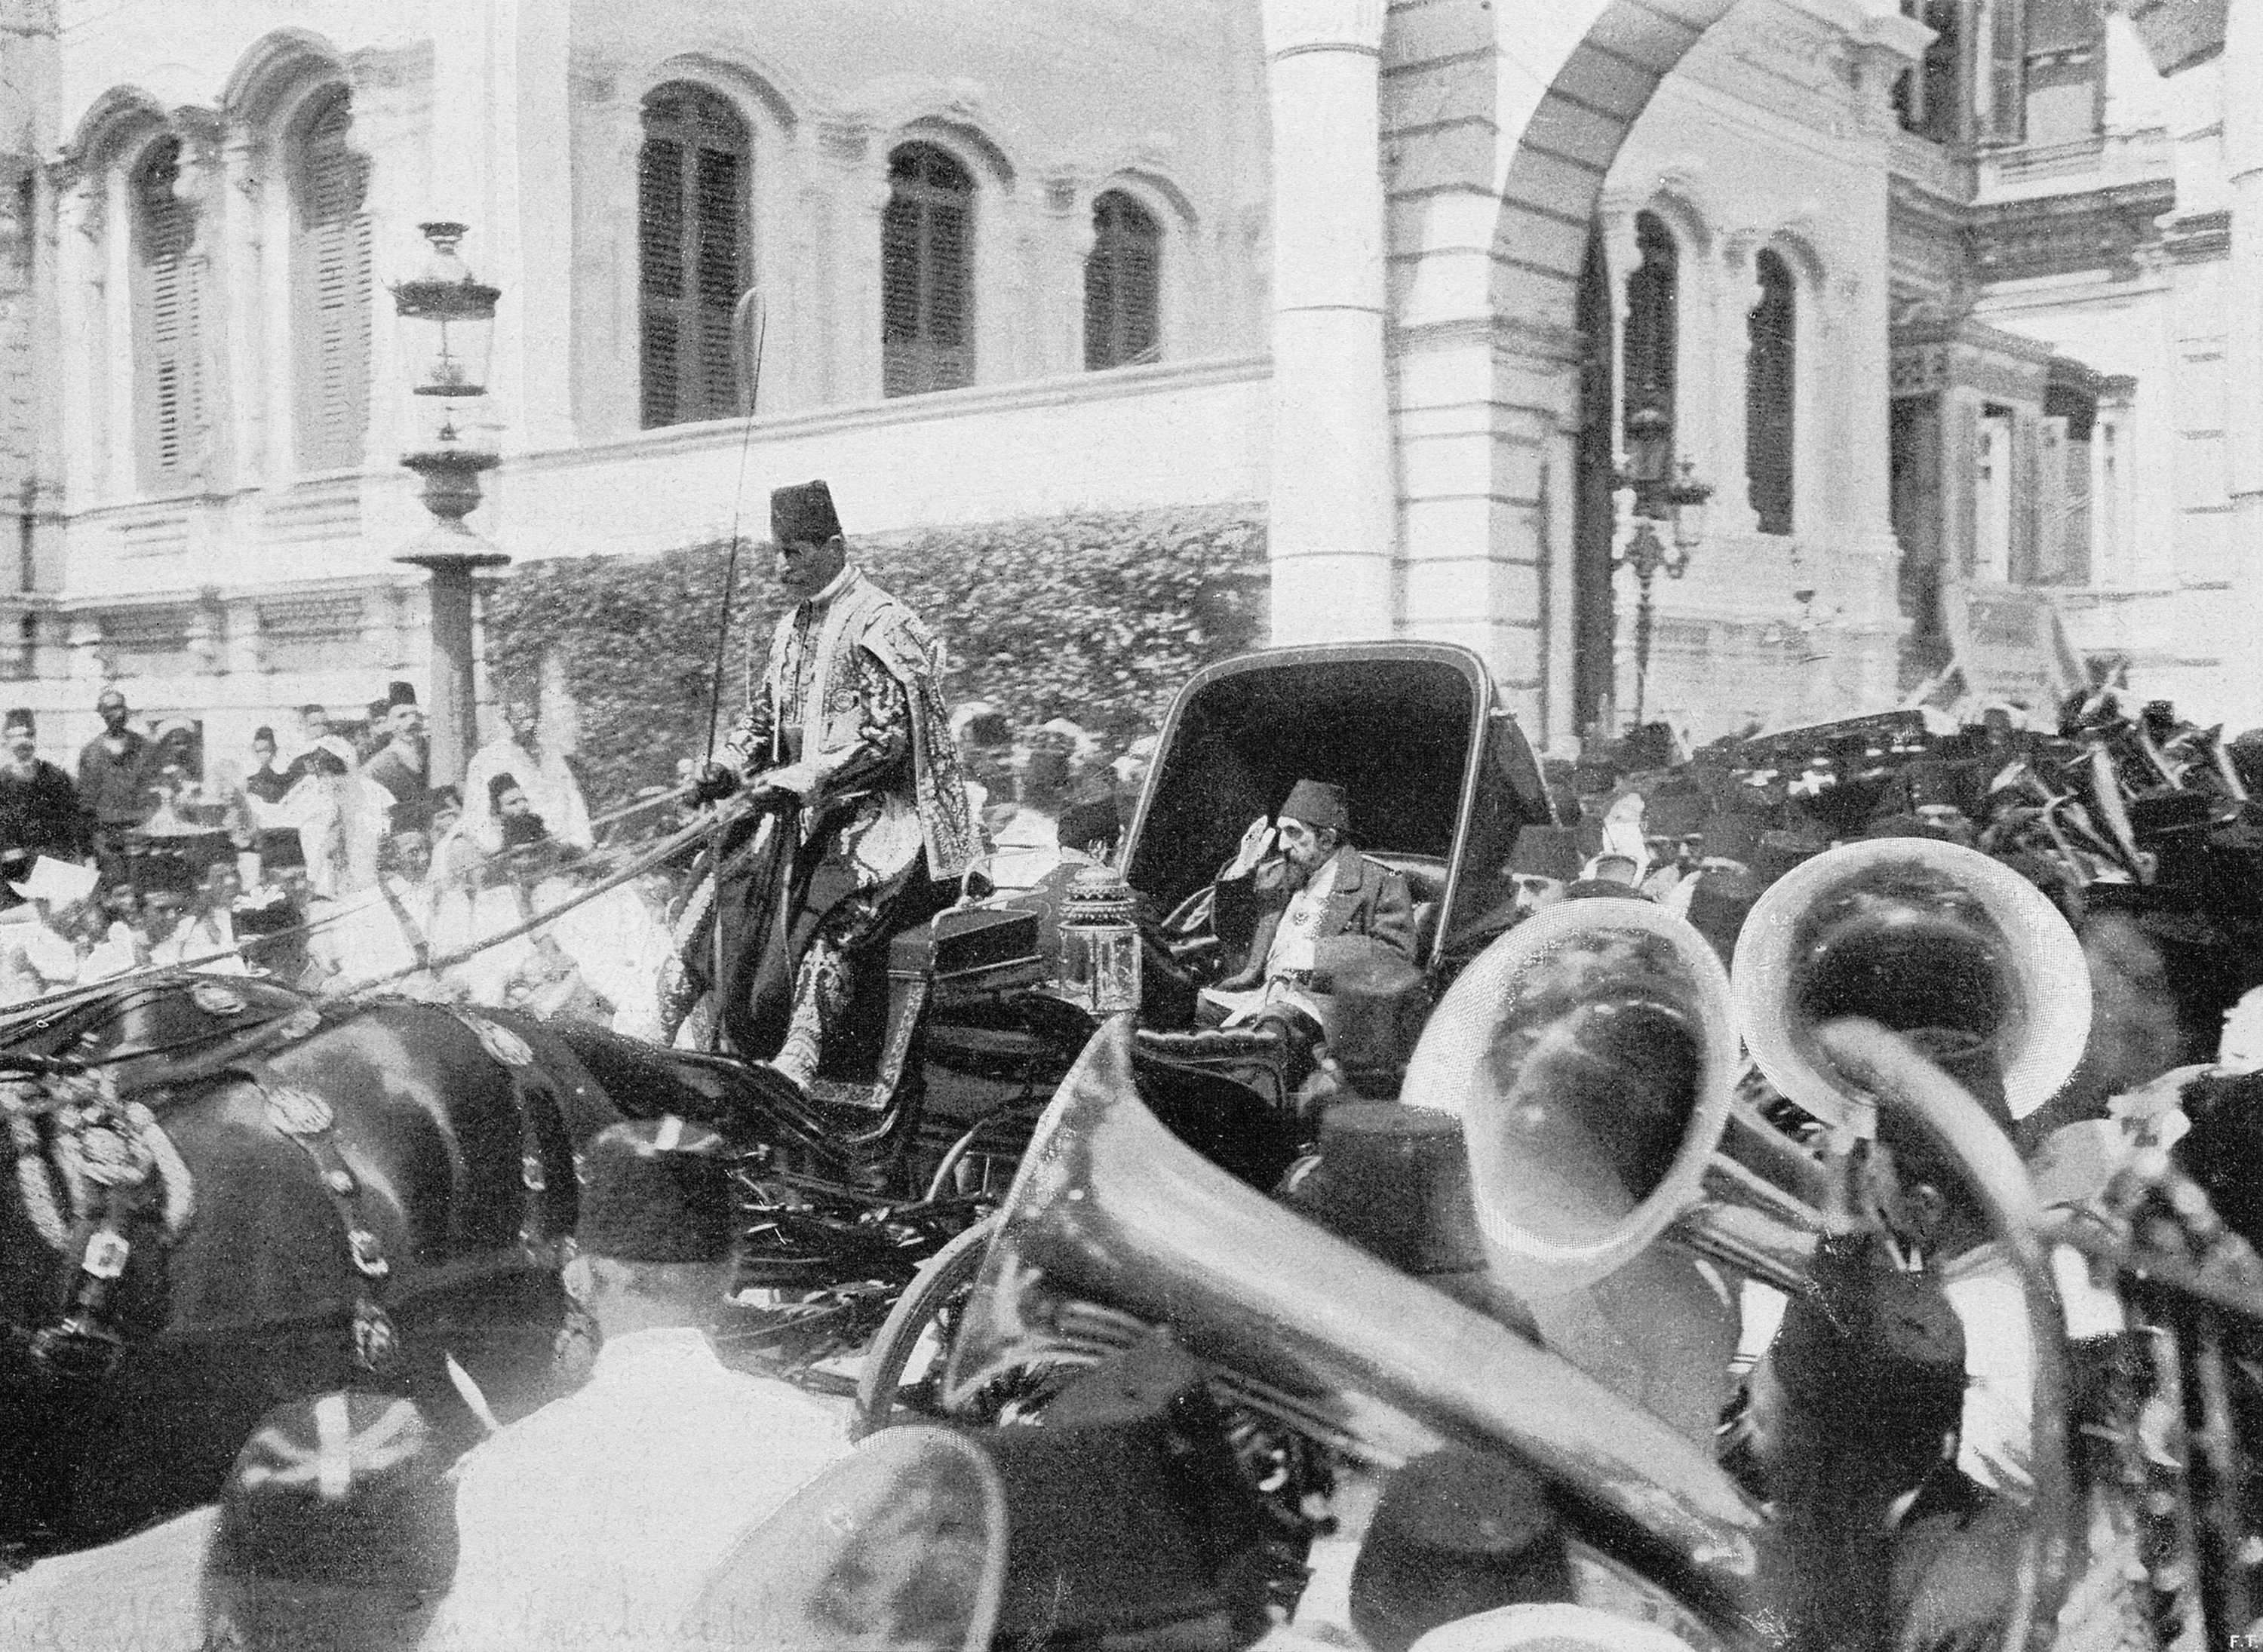 Ottoman Sultan Abdulhamid II in a carriage passing through the crowd on the streets of Istanbul, Turkey, Aug. 23, 1908. (Getty Images)